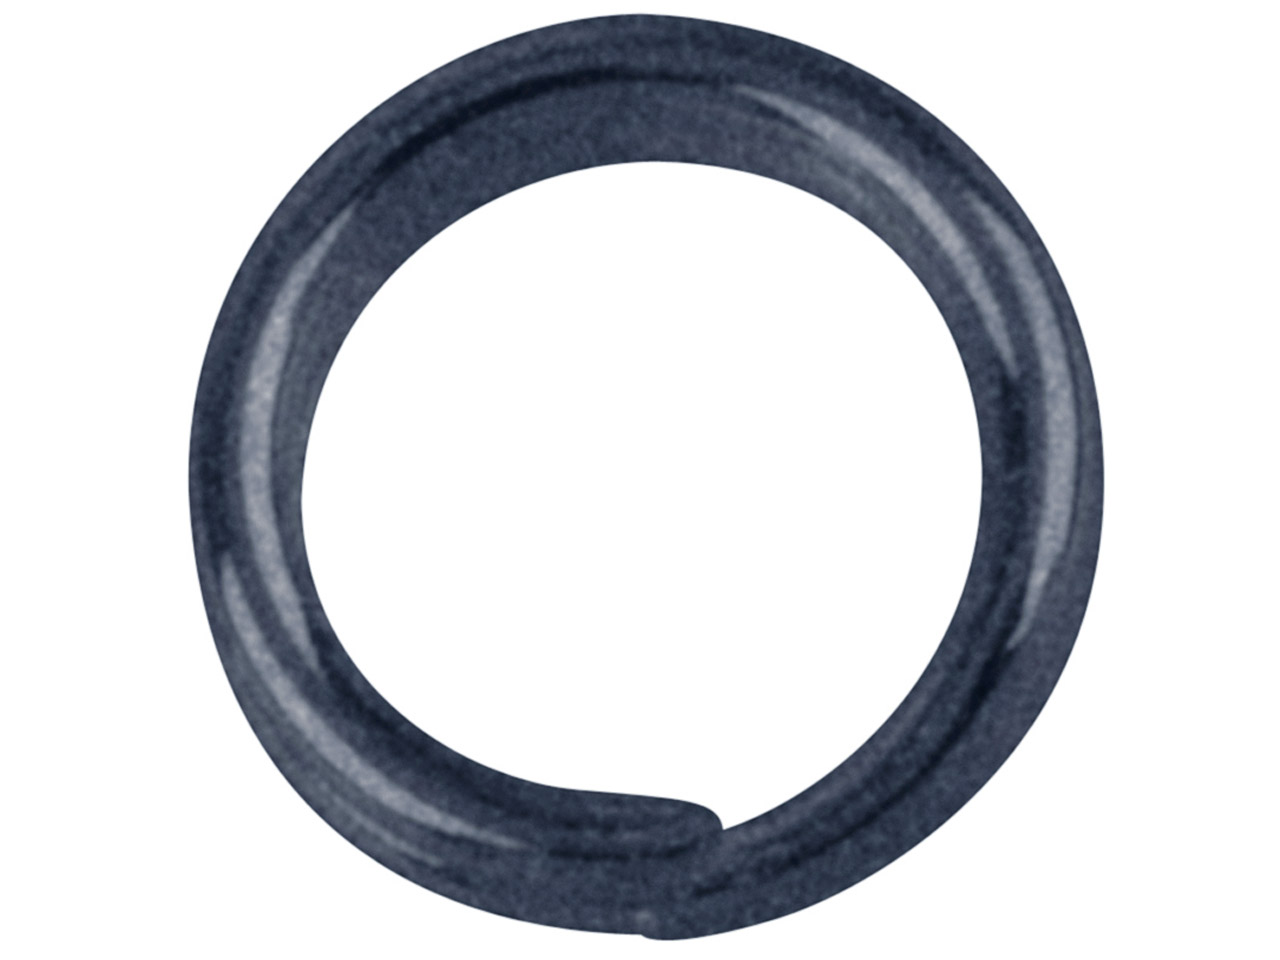 Antique Black Split Rings 5.8mm    Pack of 20